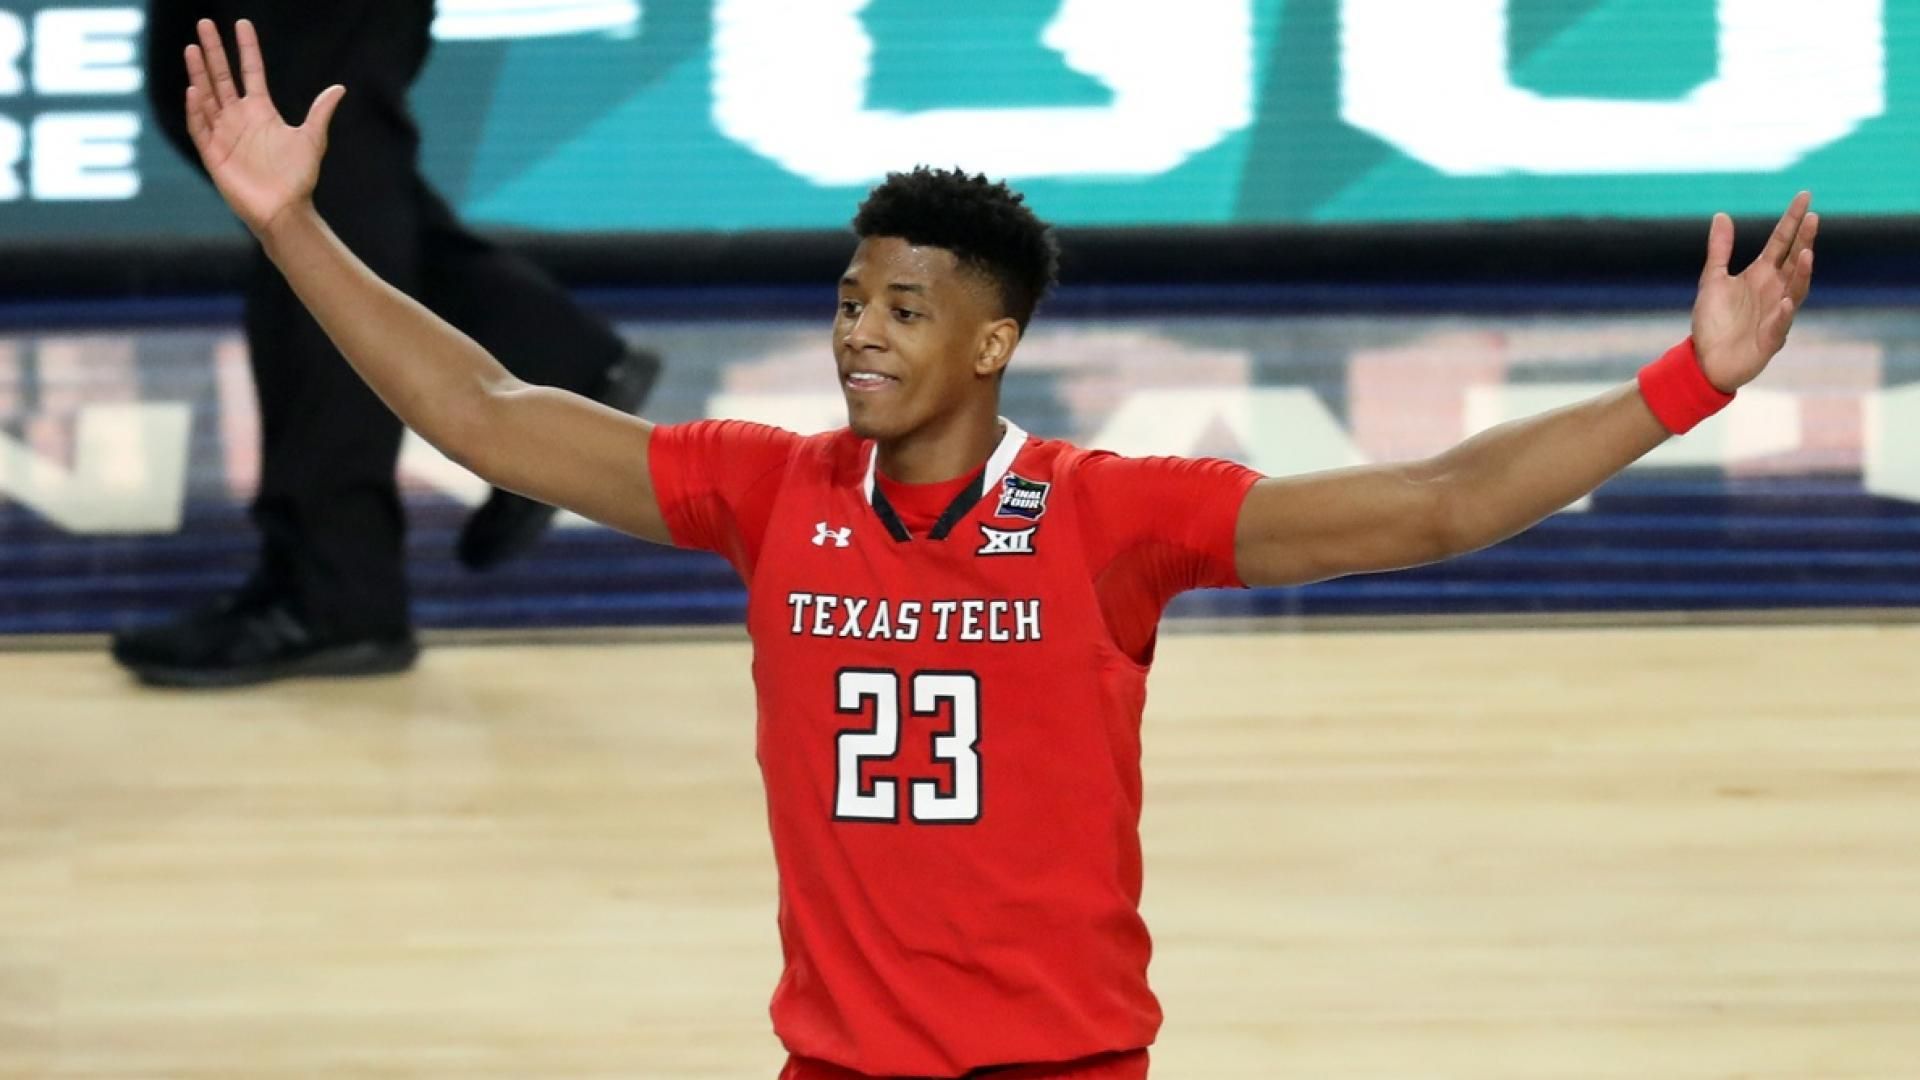 Texas Tech S Jarrett Culver Is Addicted To The Game Nba Com